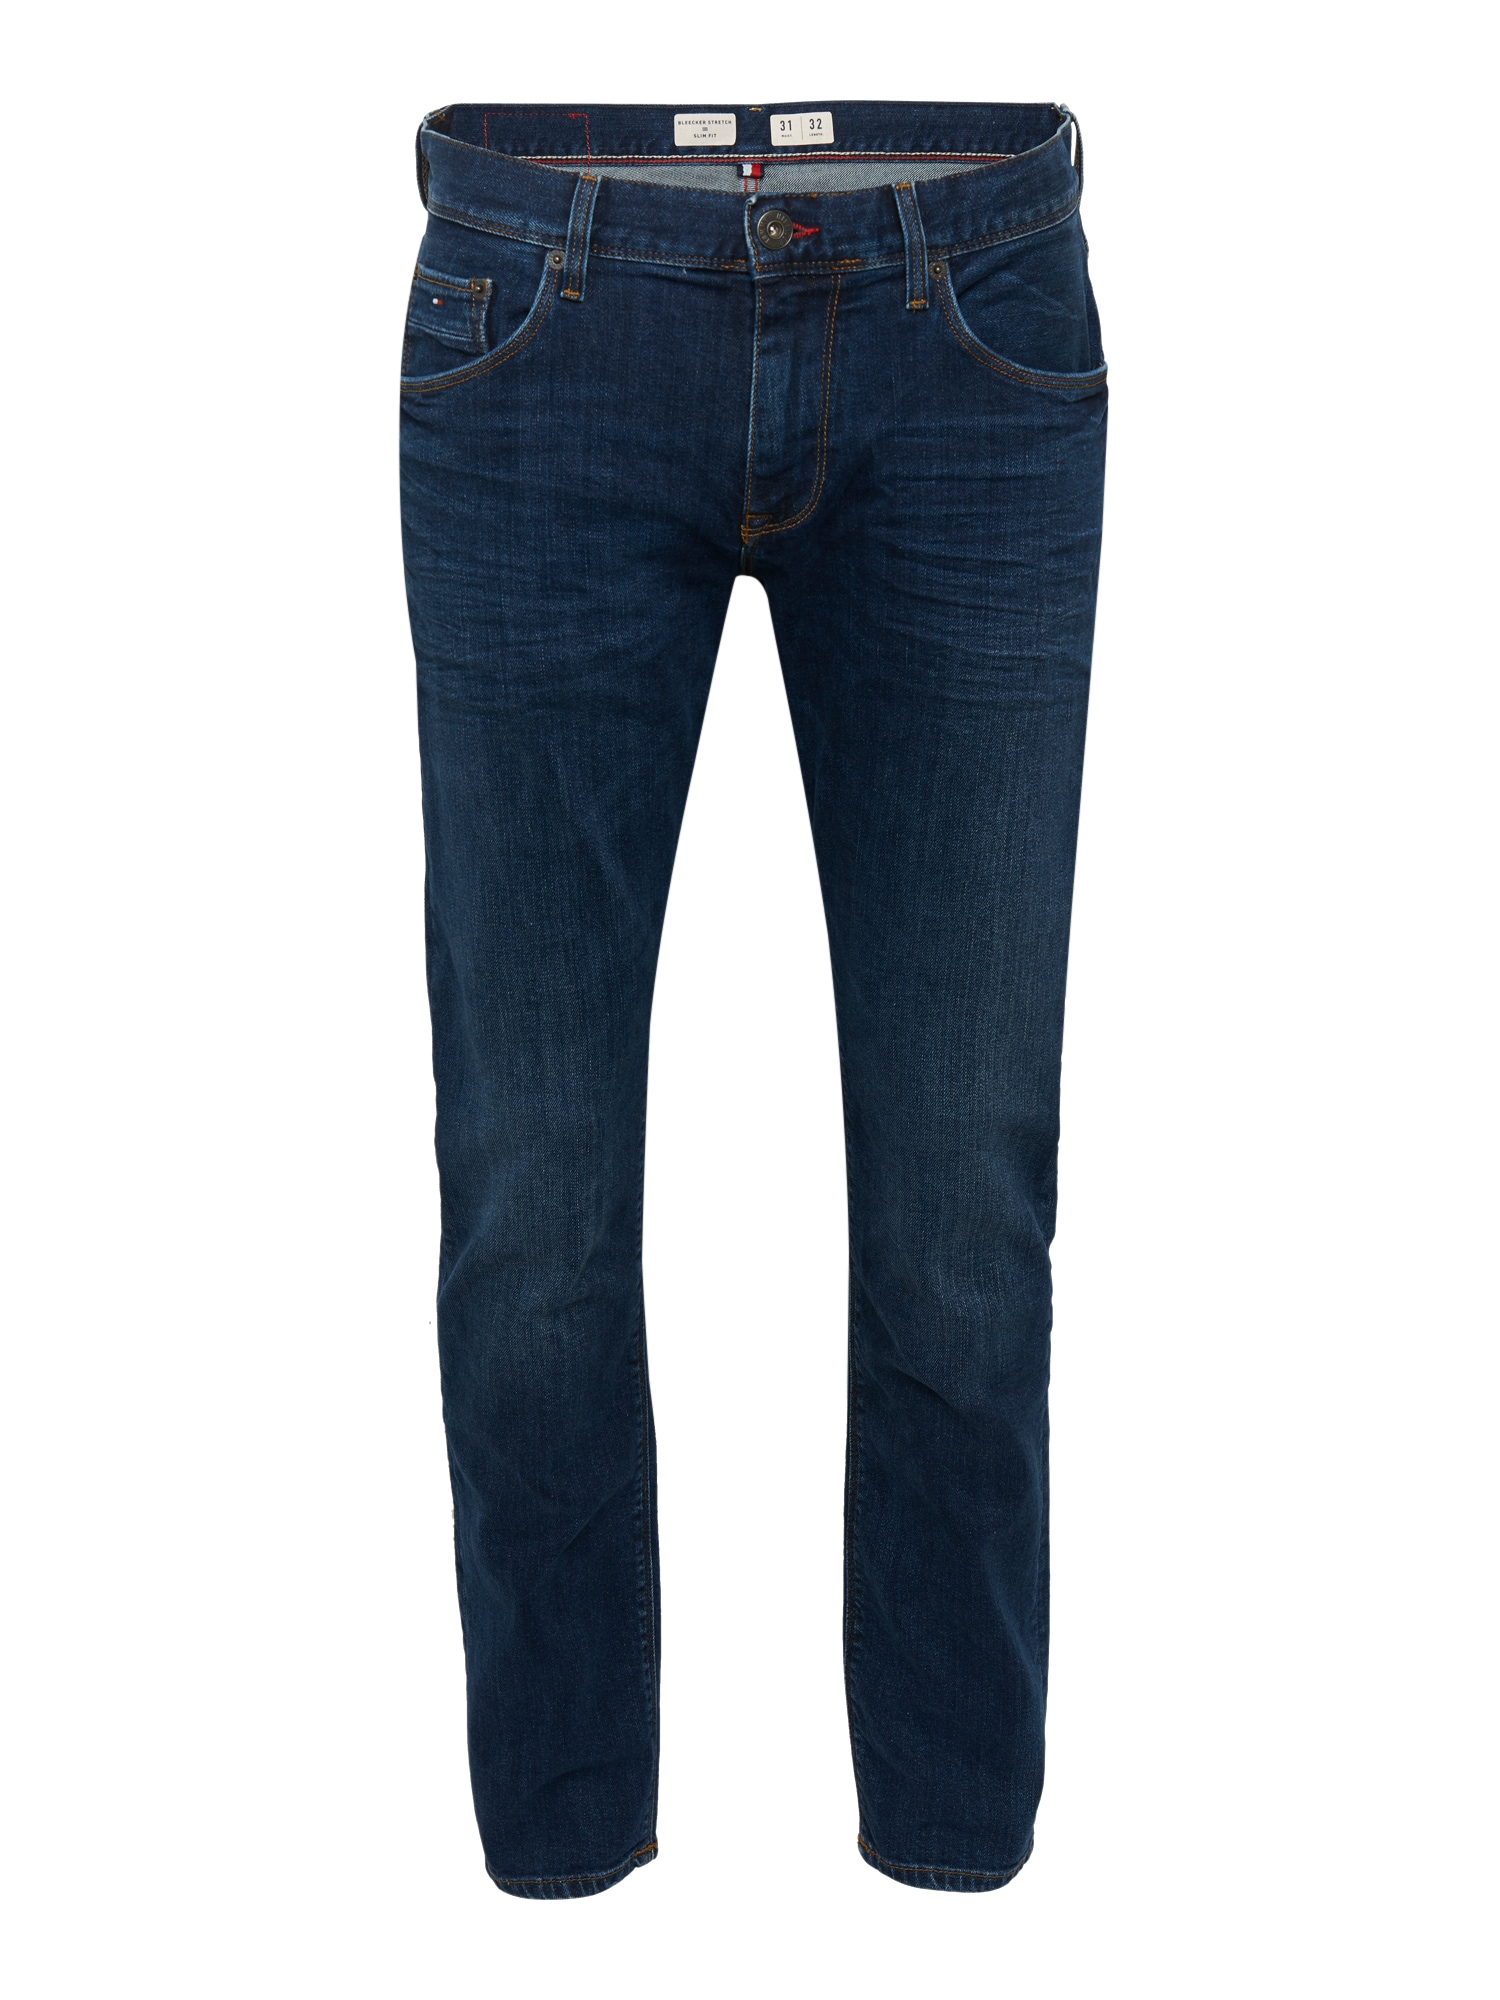 Slim fit Jeans 'Core Bleecker' | Bekleidung > Jeans > Slim Fit Jeans | Blue | Tommy Hilfiger